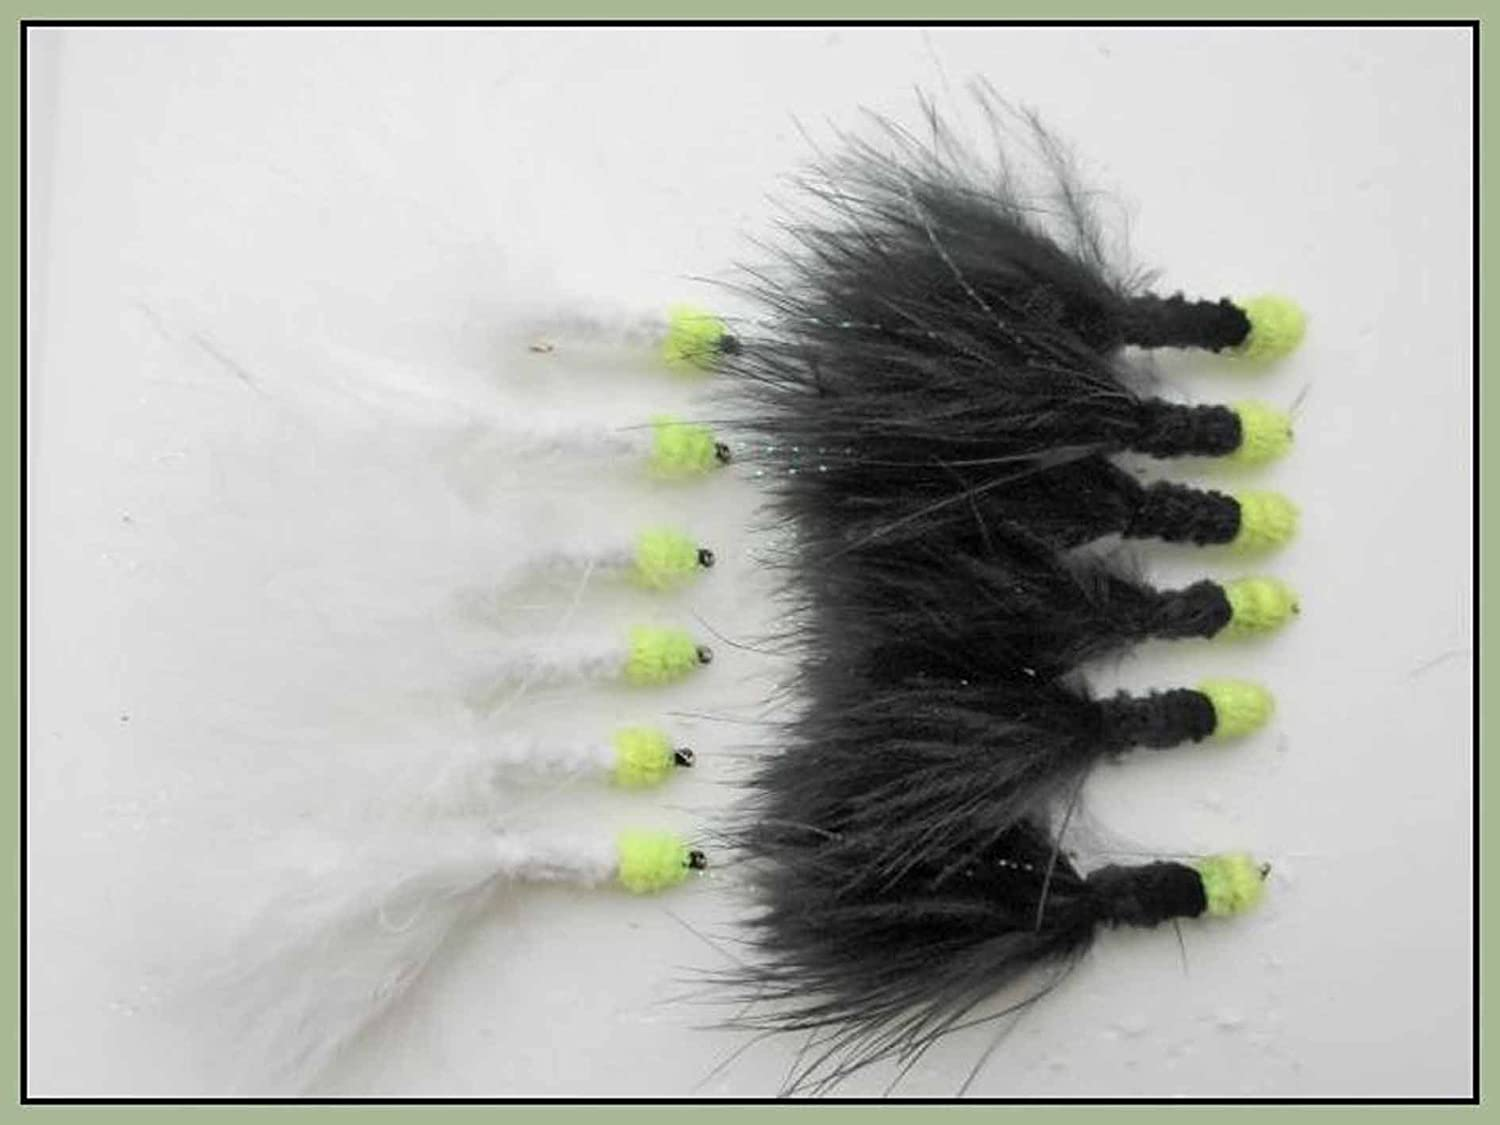 Size 10 Lures Tadpoles 6 Pack Black Green Thorax Tadpole Trout Flies